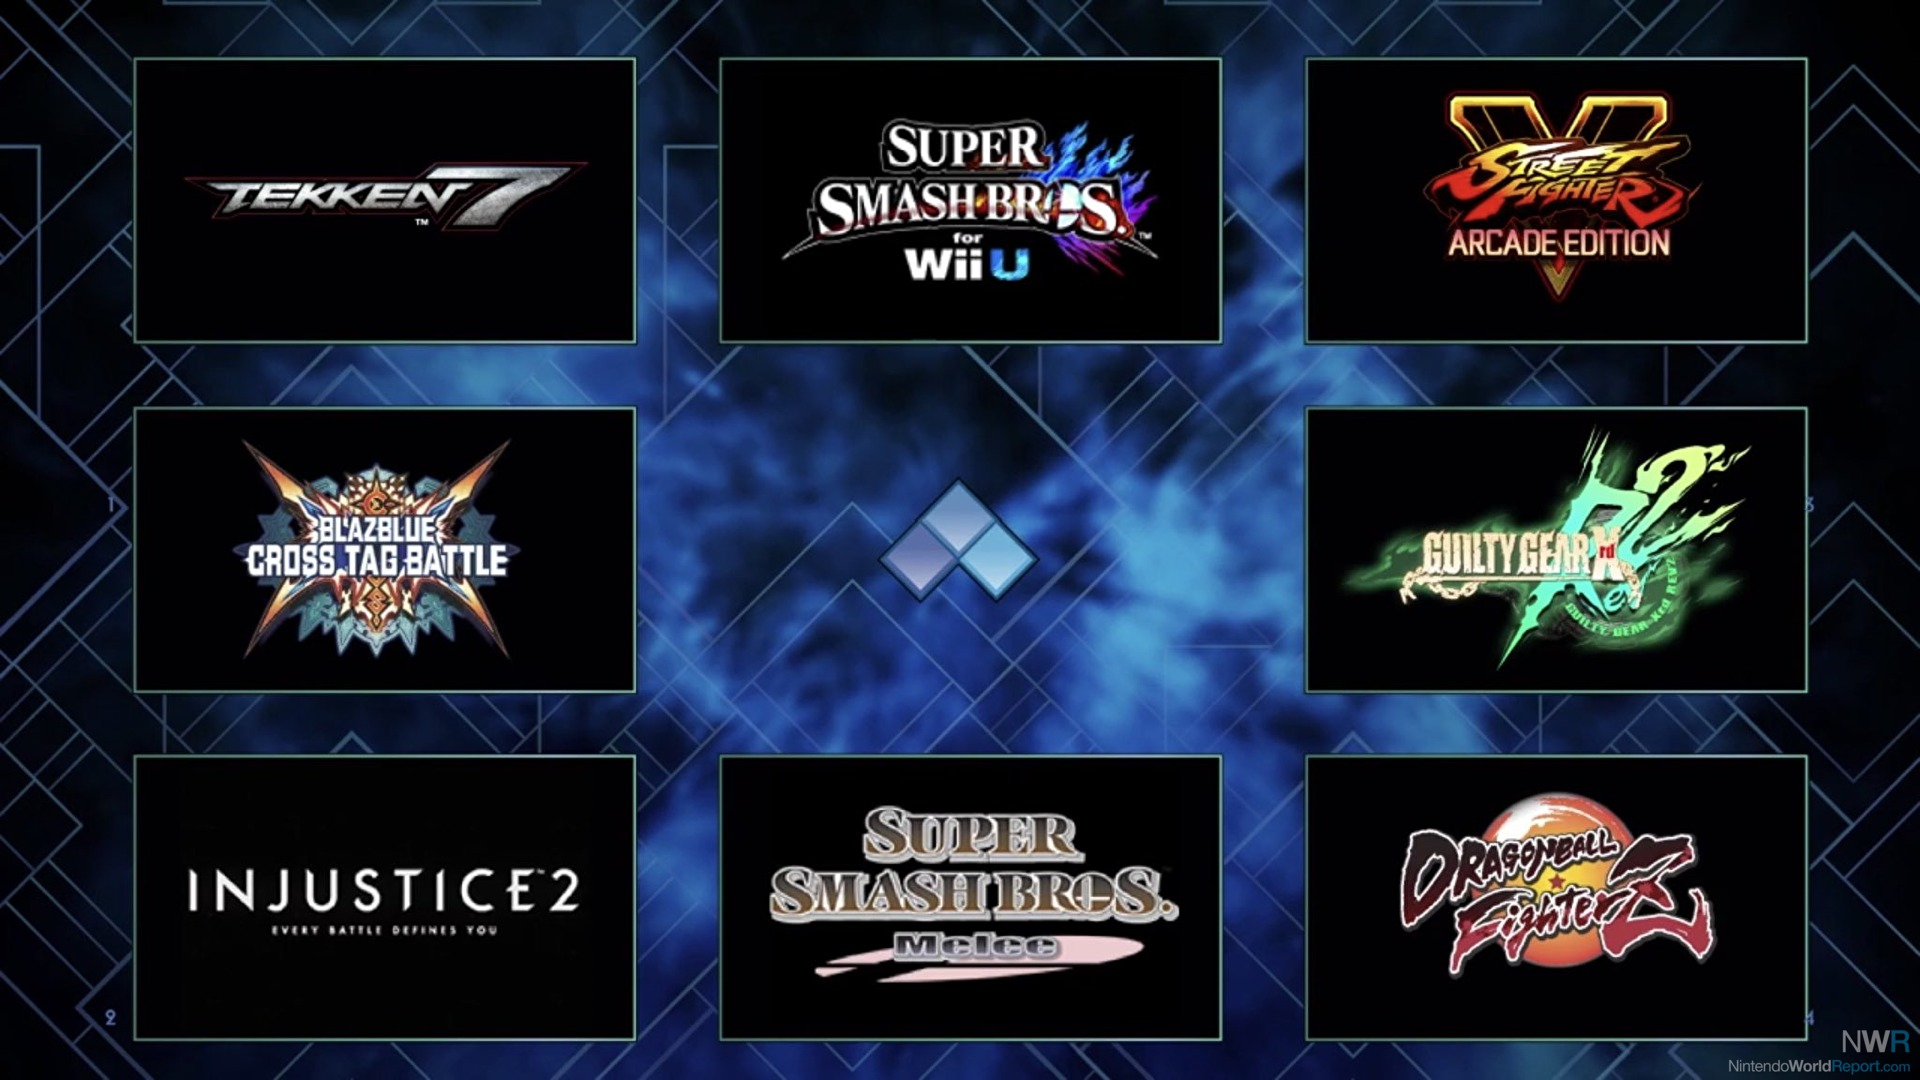 Evo 2018 lineup includes Street Fighter 5, Melee and Dragon Ball